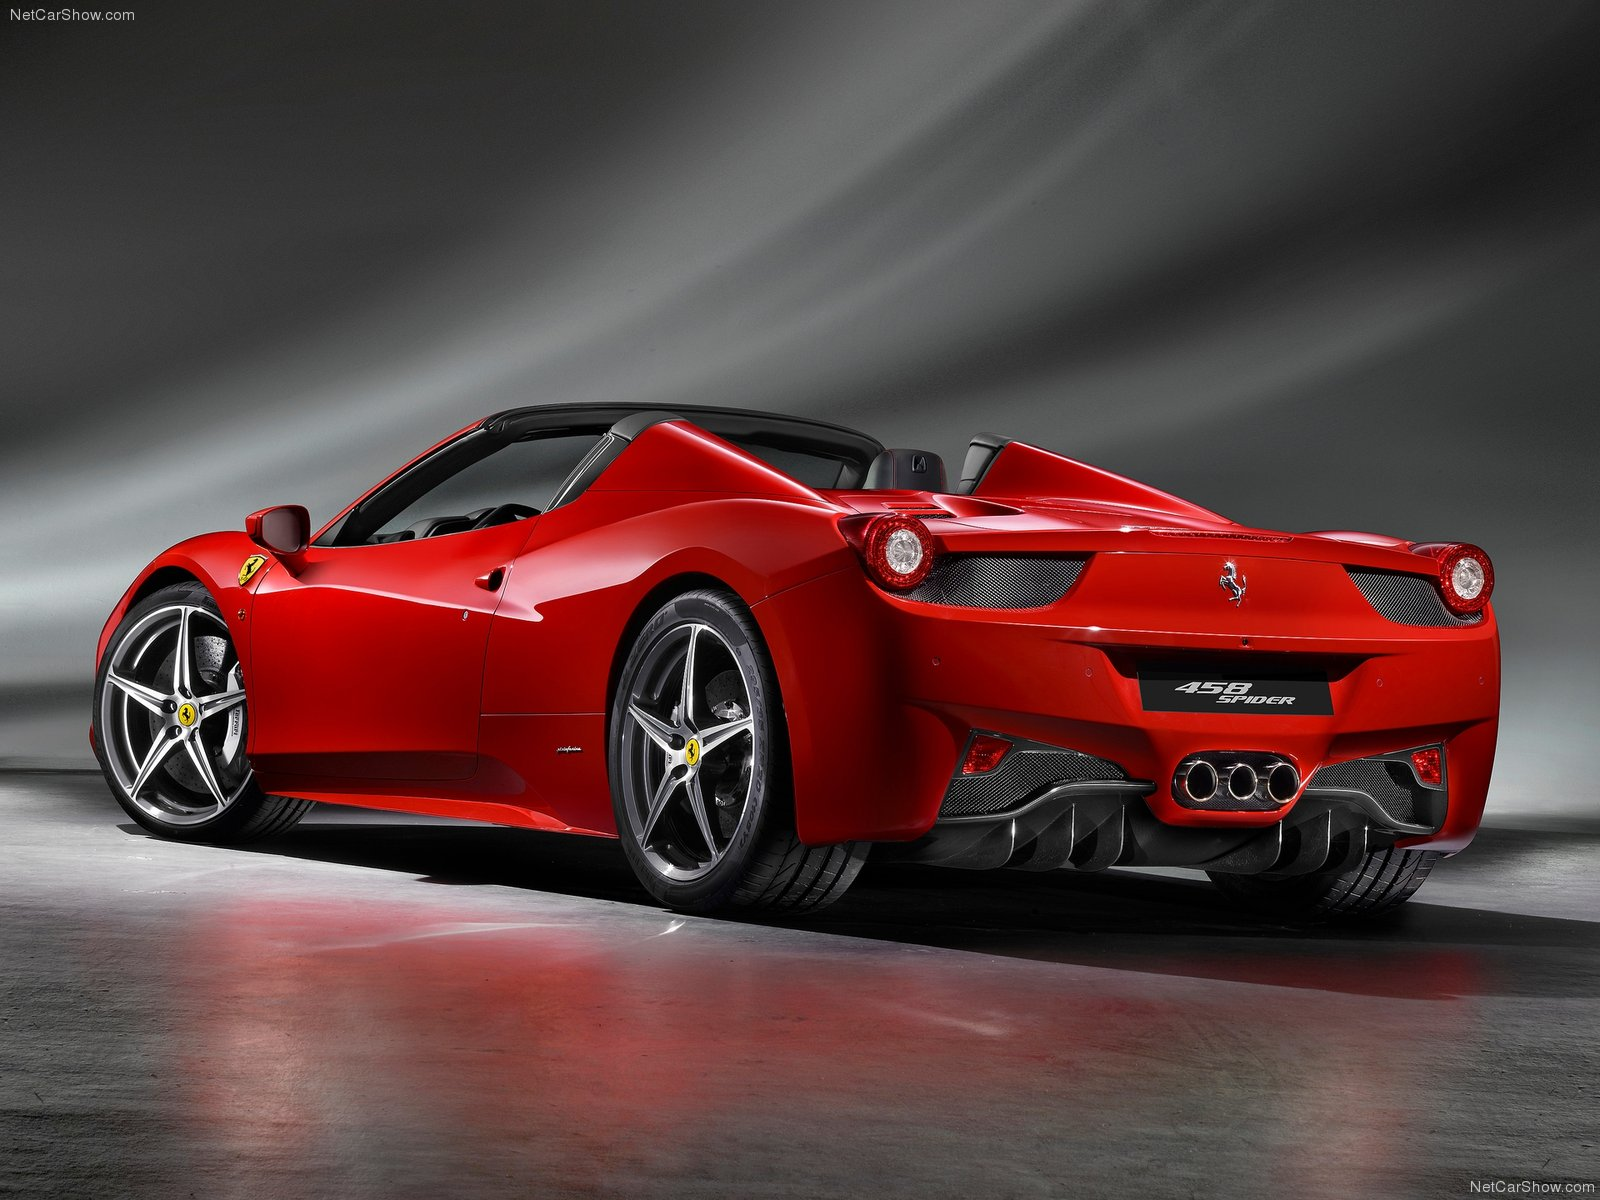 ferrari 458 spider picture 83421 ferrari photo gallery carsbase. Cars Review. Best American Auto & Cars Review